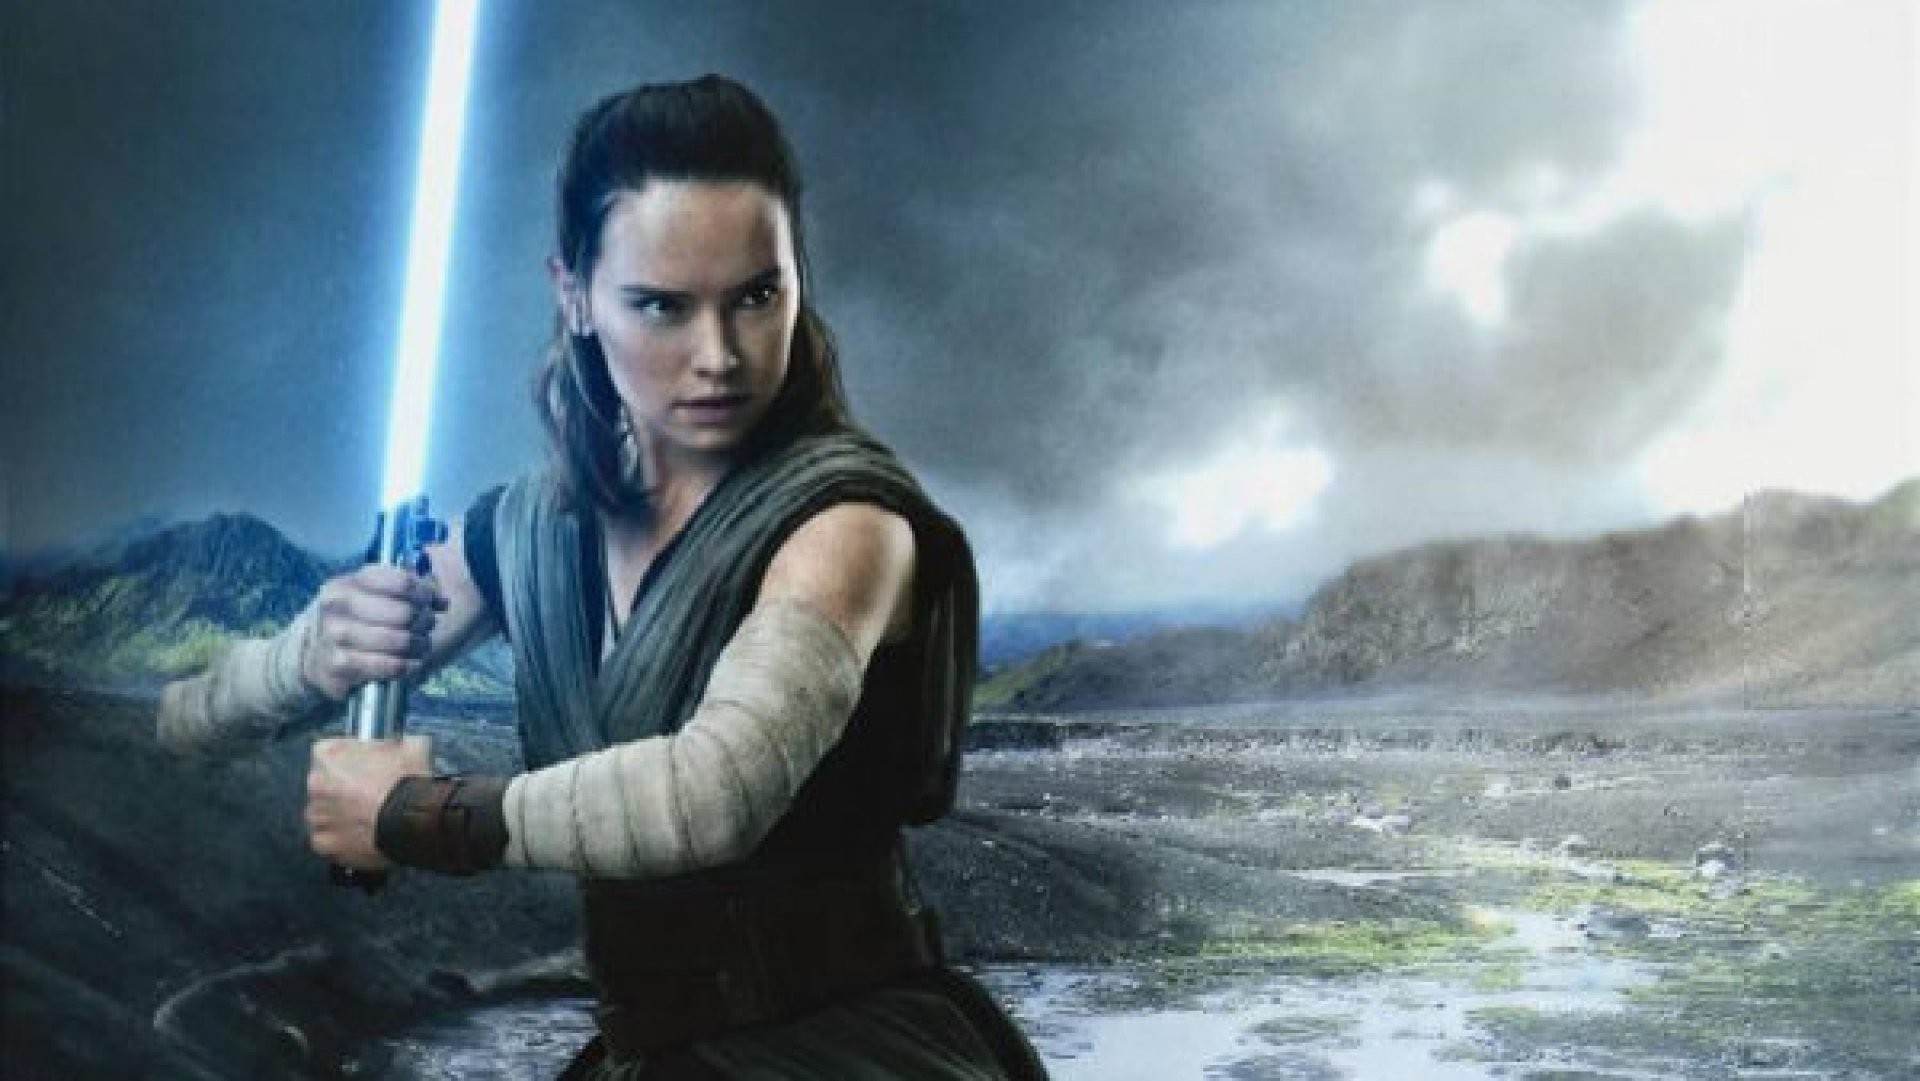 Rey Star Wars Wallpapers Posted By Sarah Walker